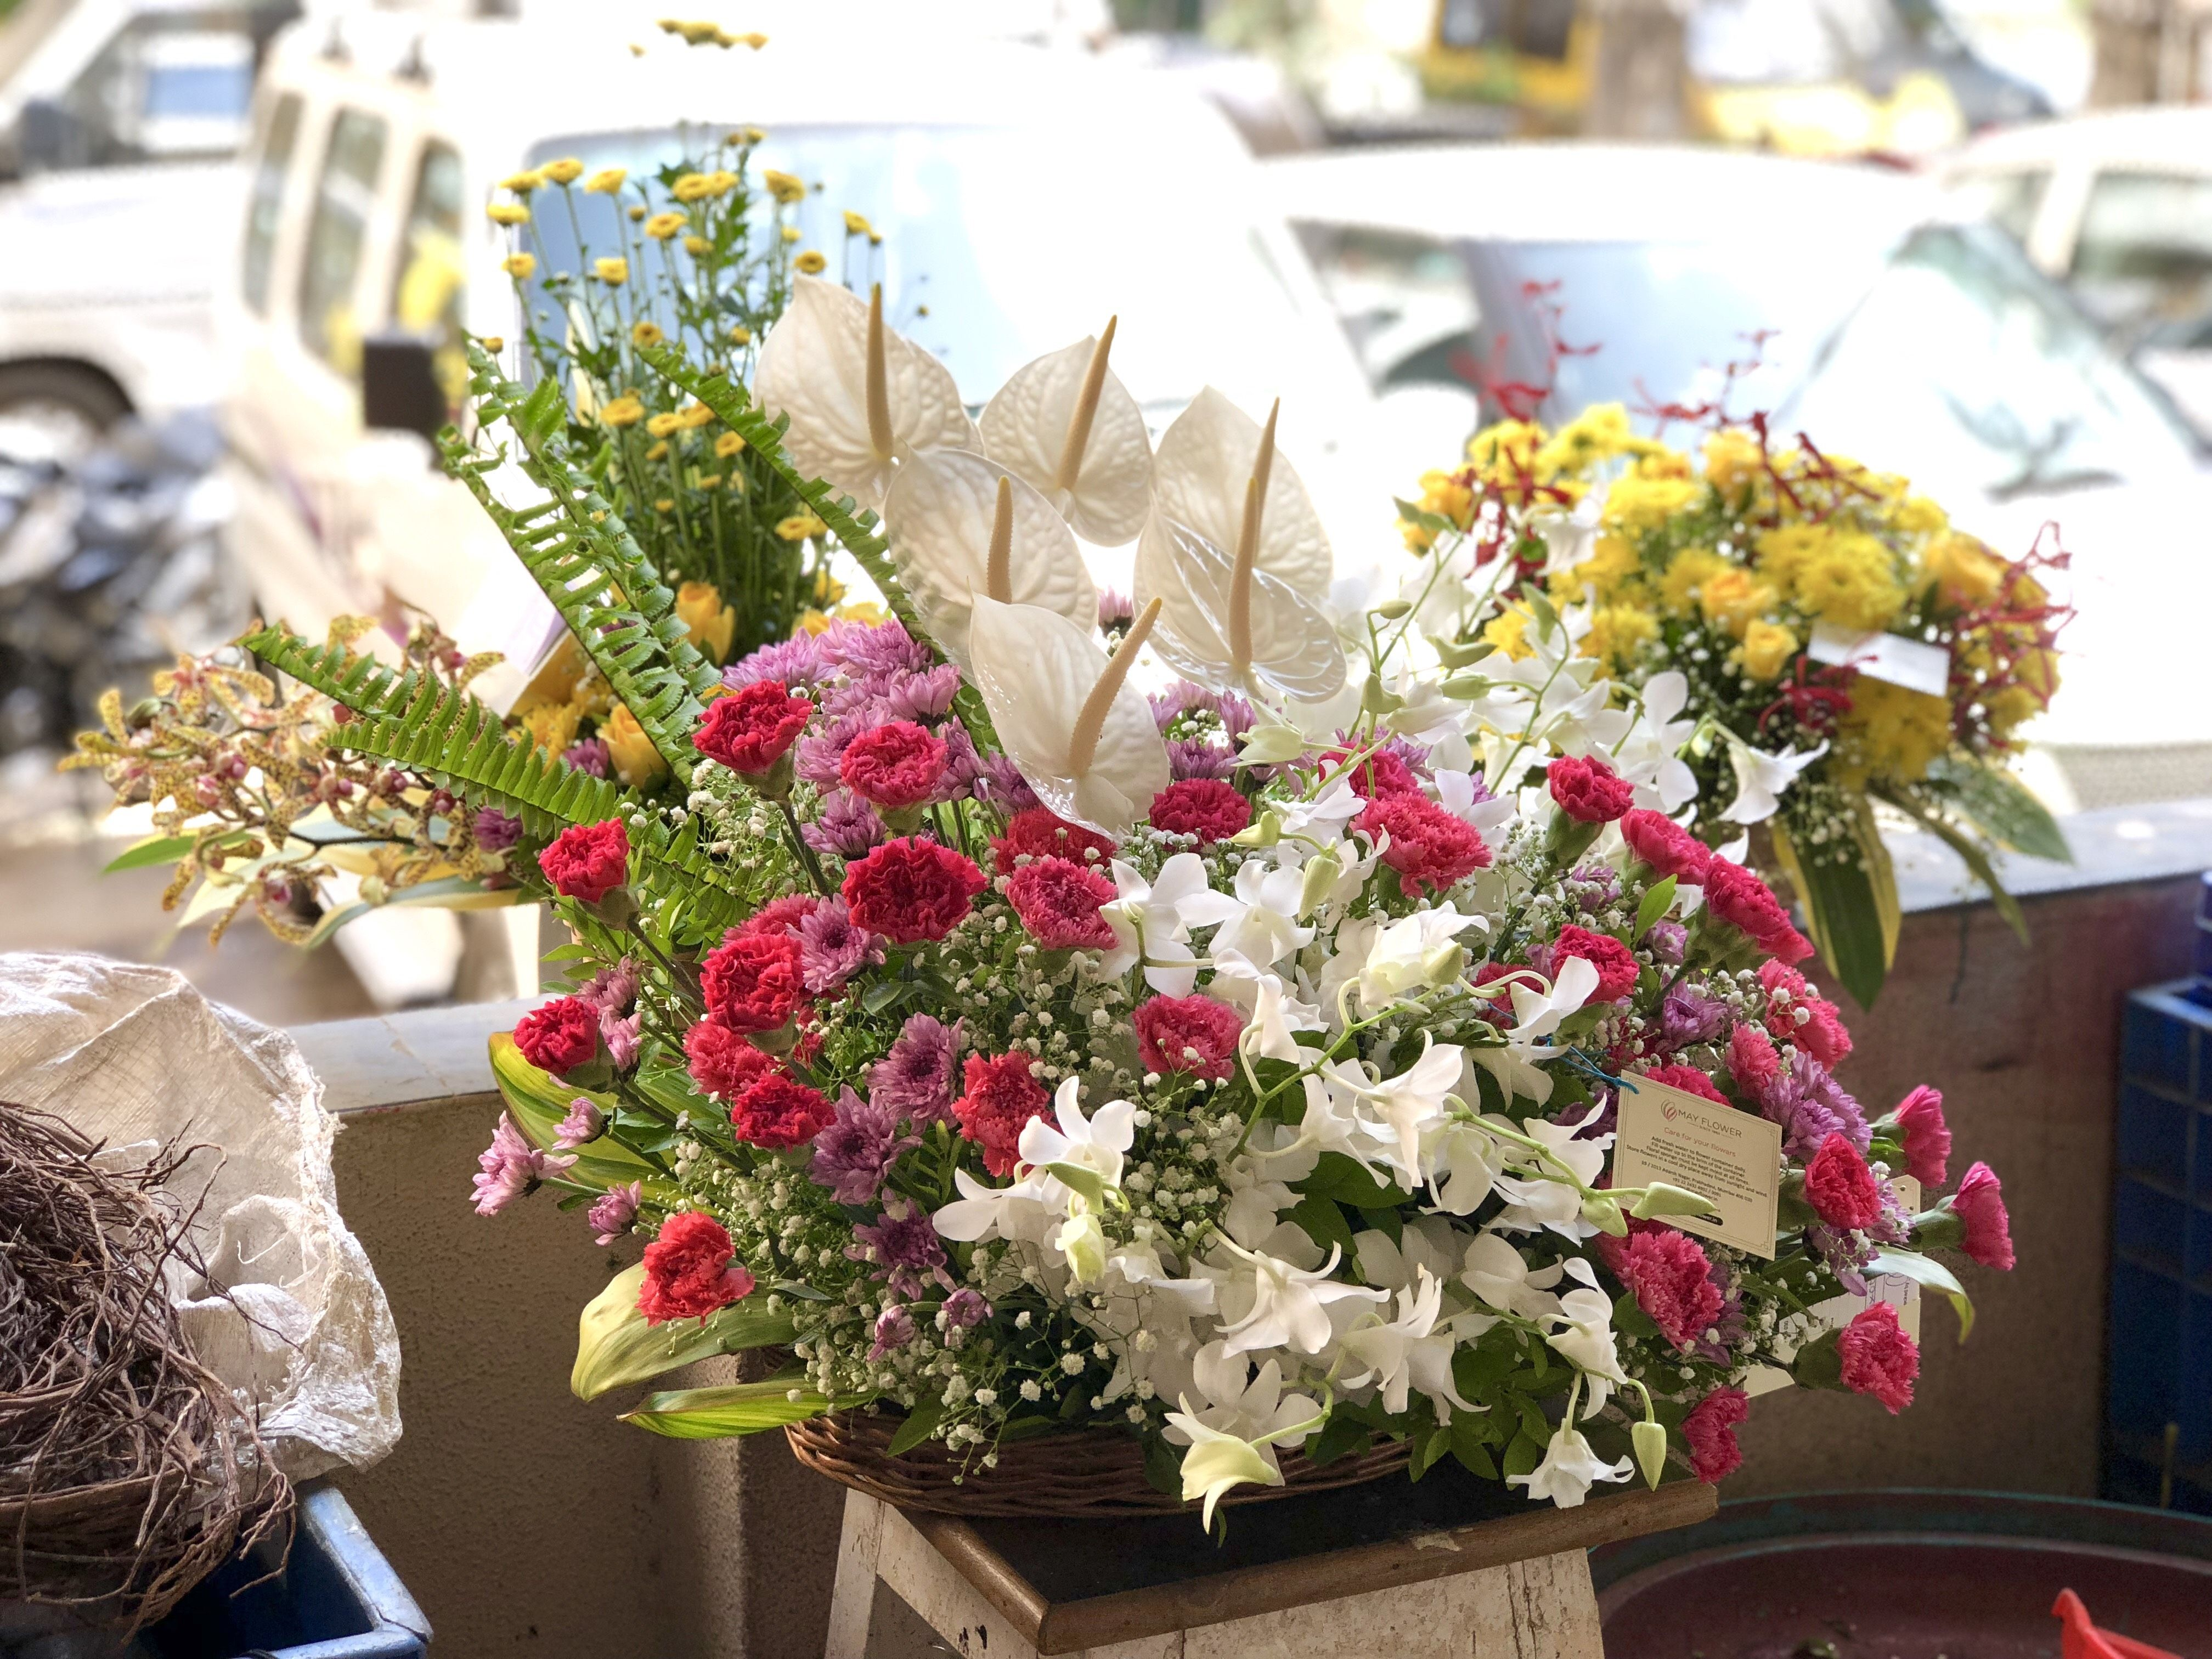 ORDER FLOWERS ONLINE FROM DUBAI AND BEST FLORIST WILL